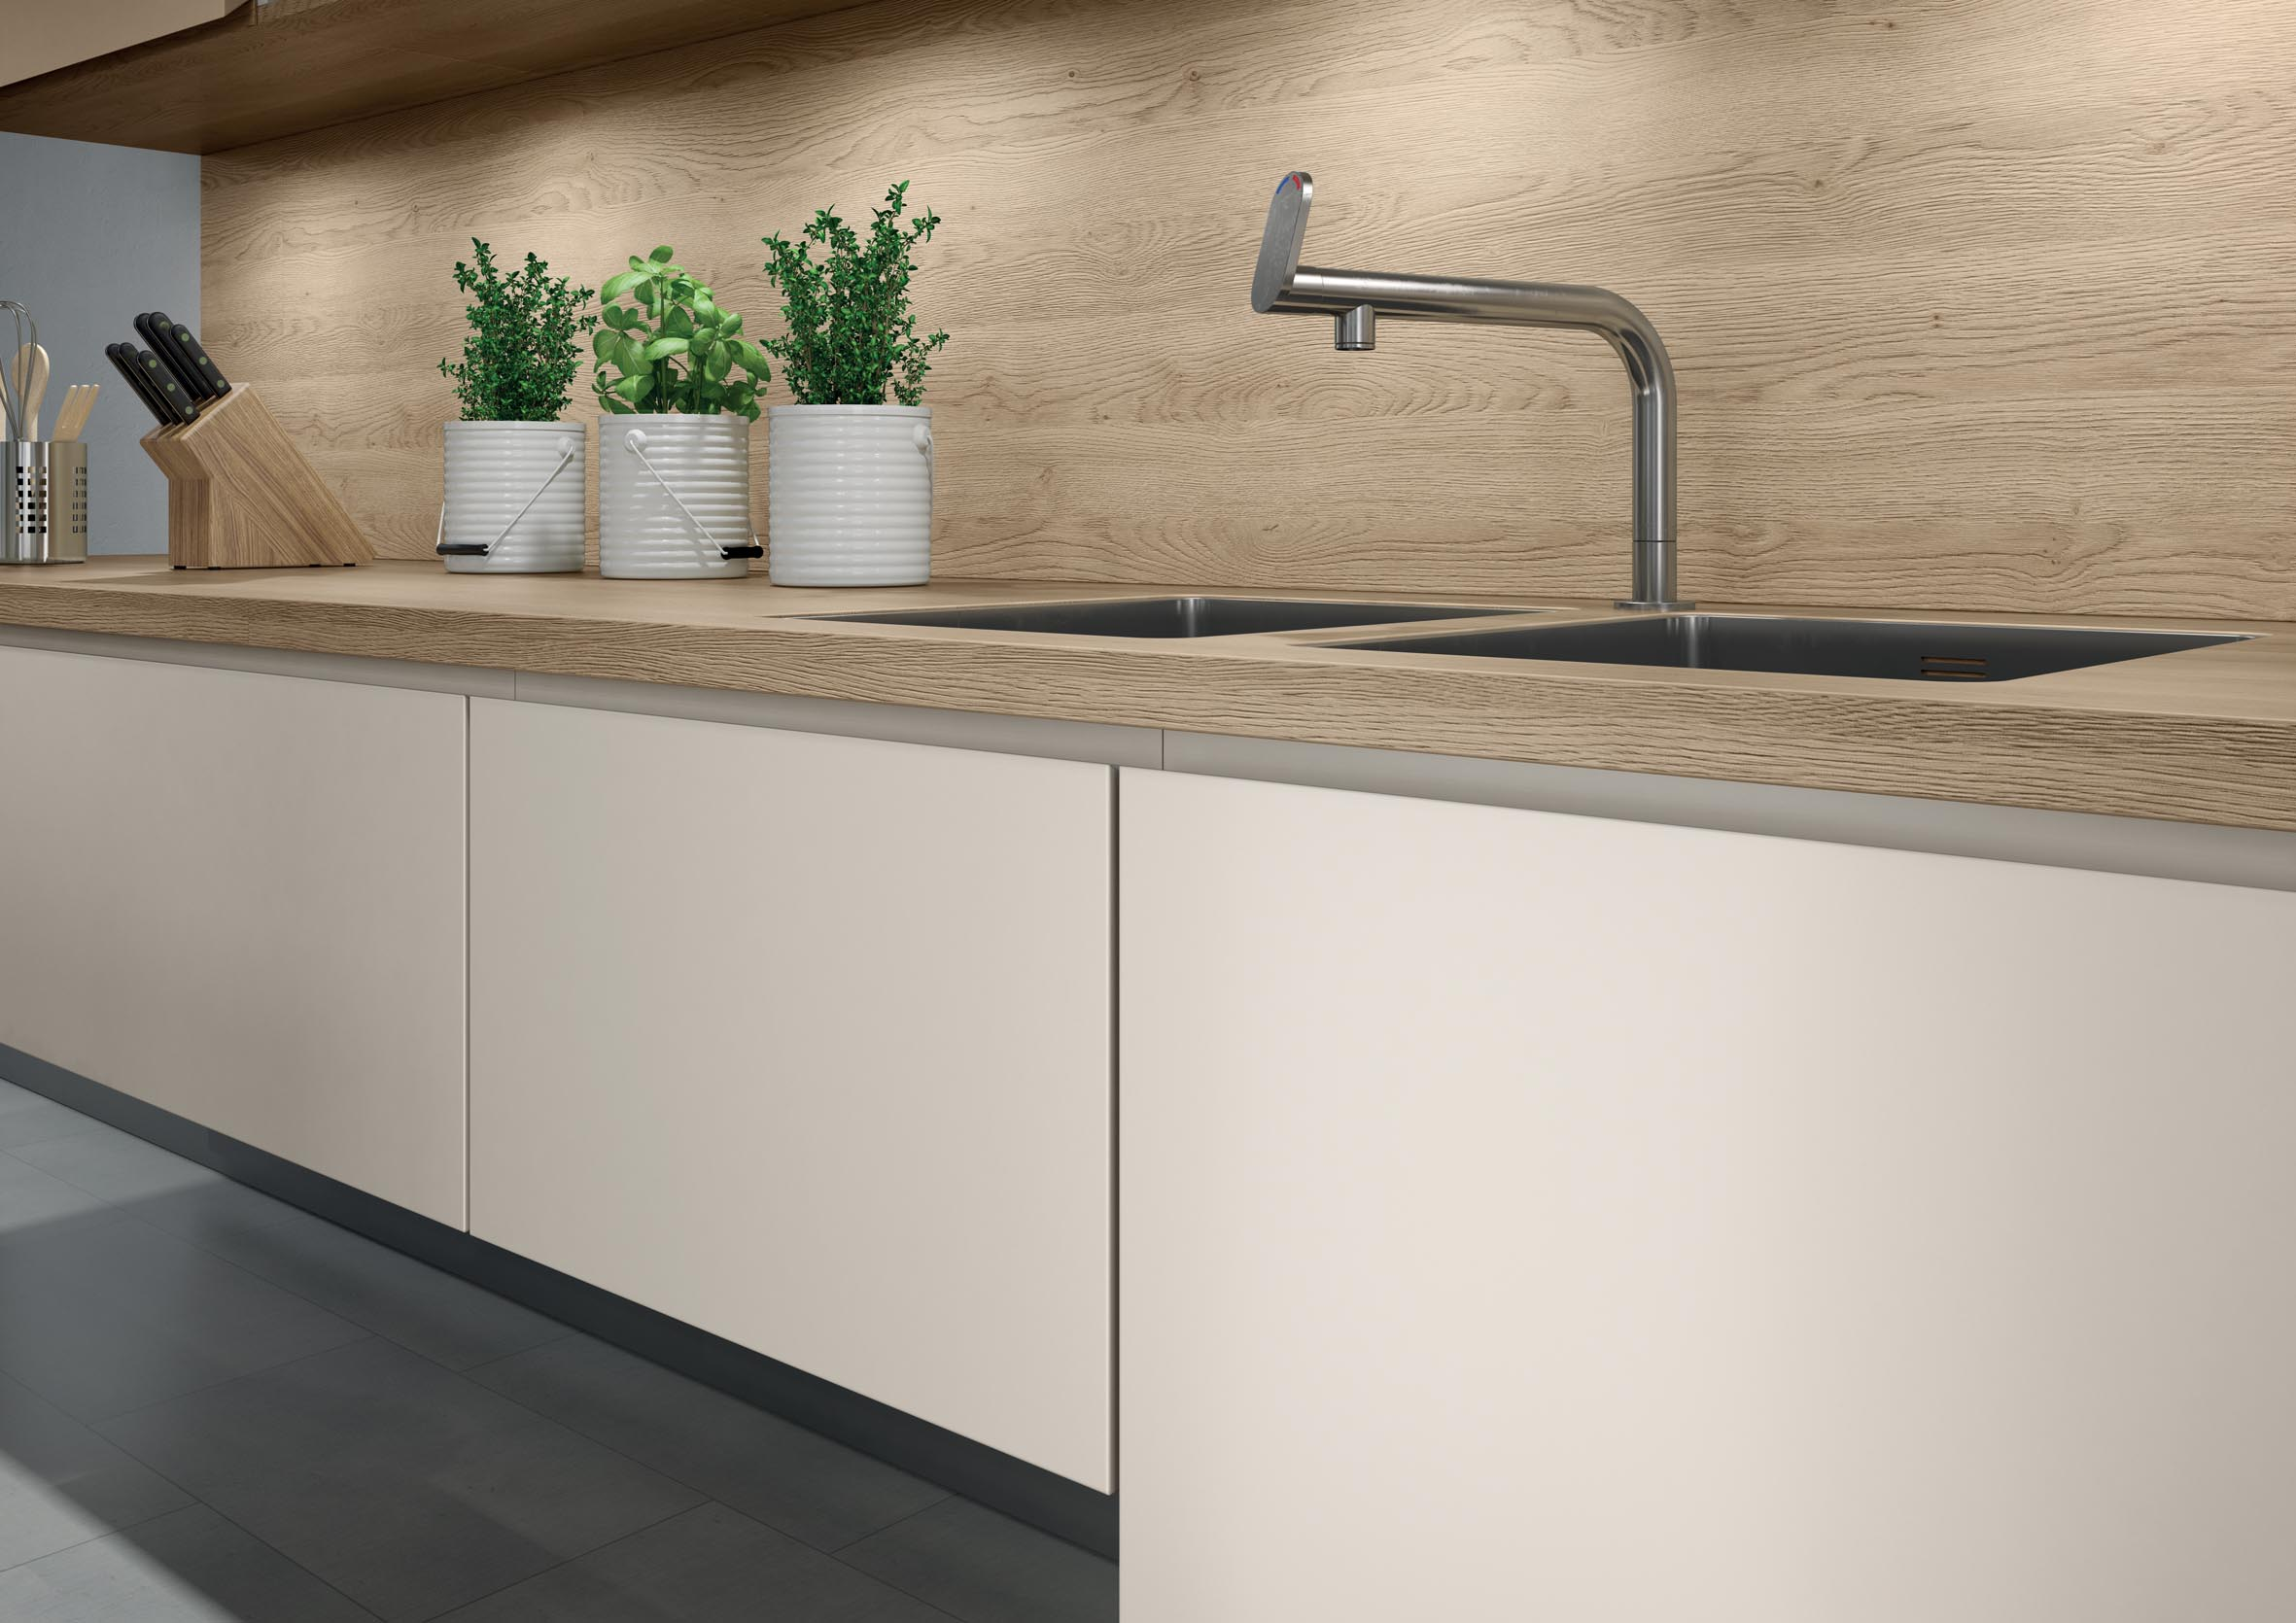 Egger perfectsense interzum 2015 the kitchen and for Perfect kitchen and bath quincy